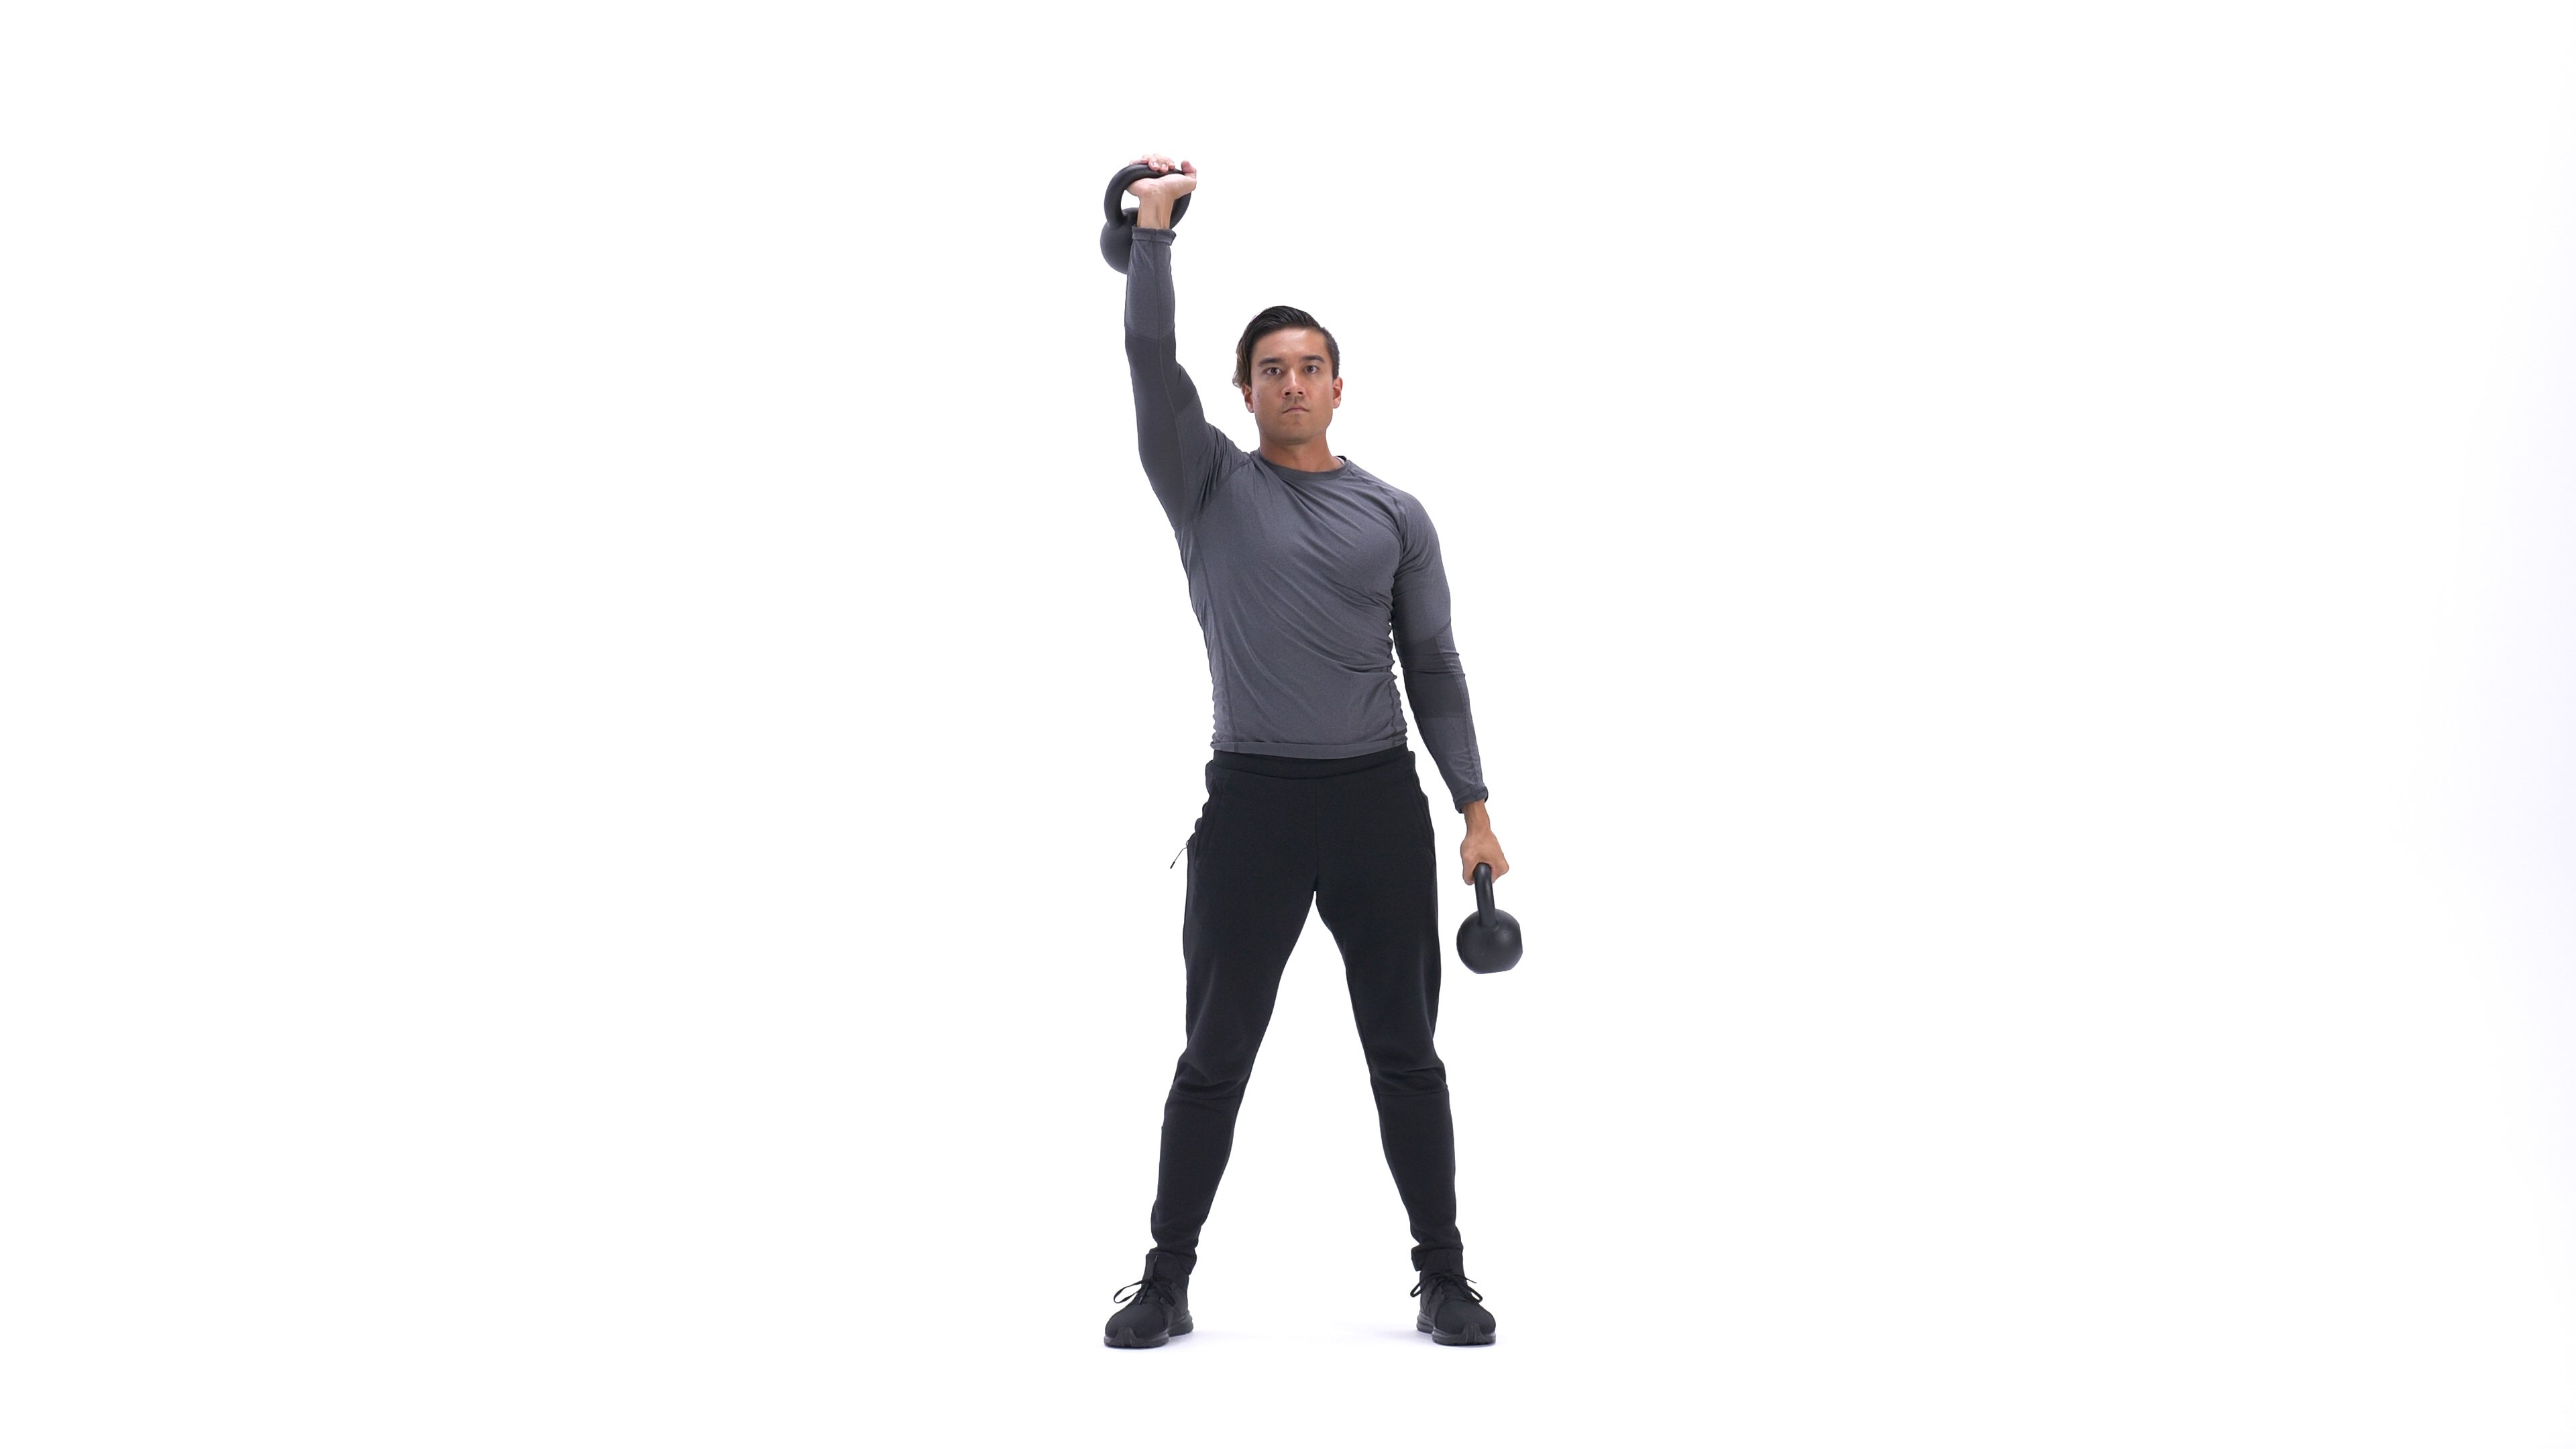 Double-kettlebell windmill image